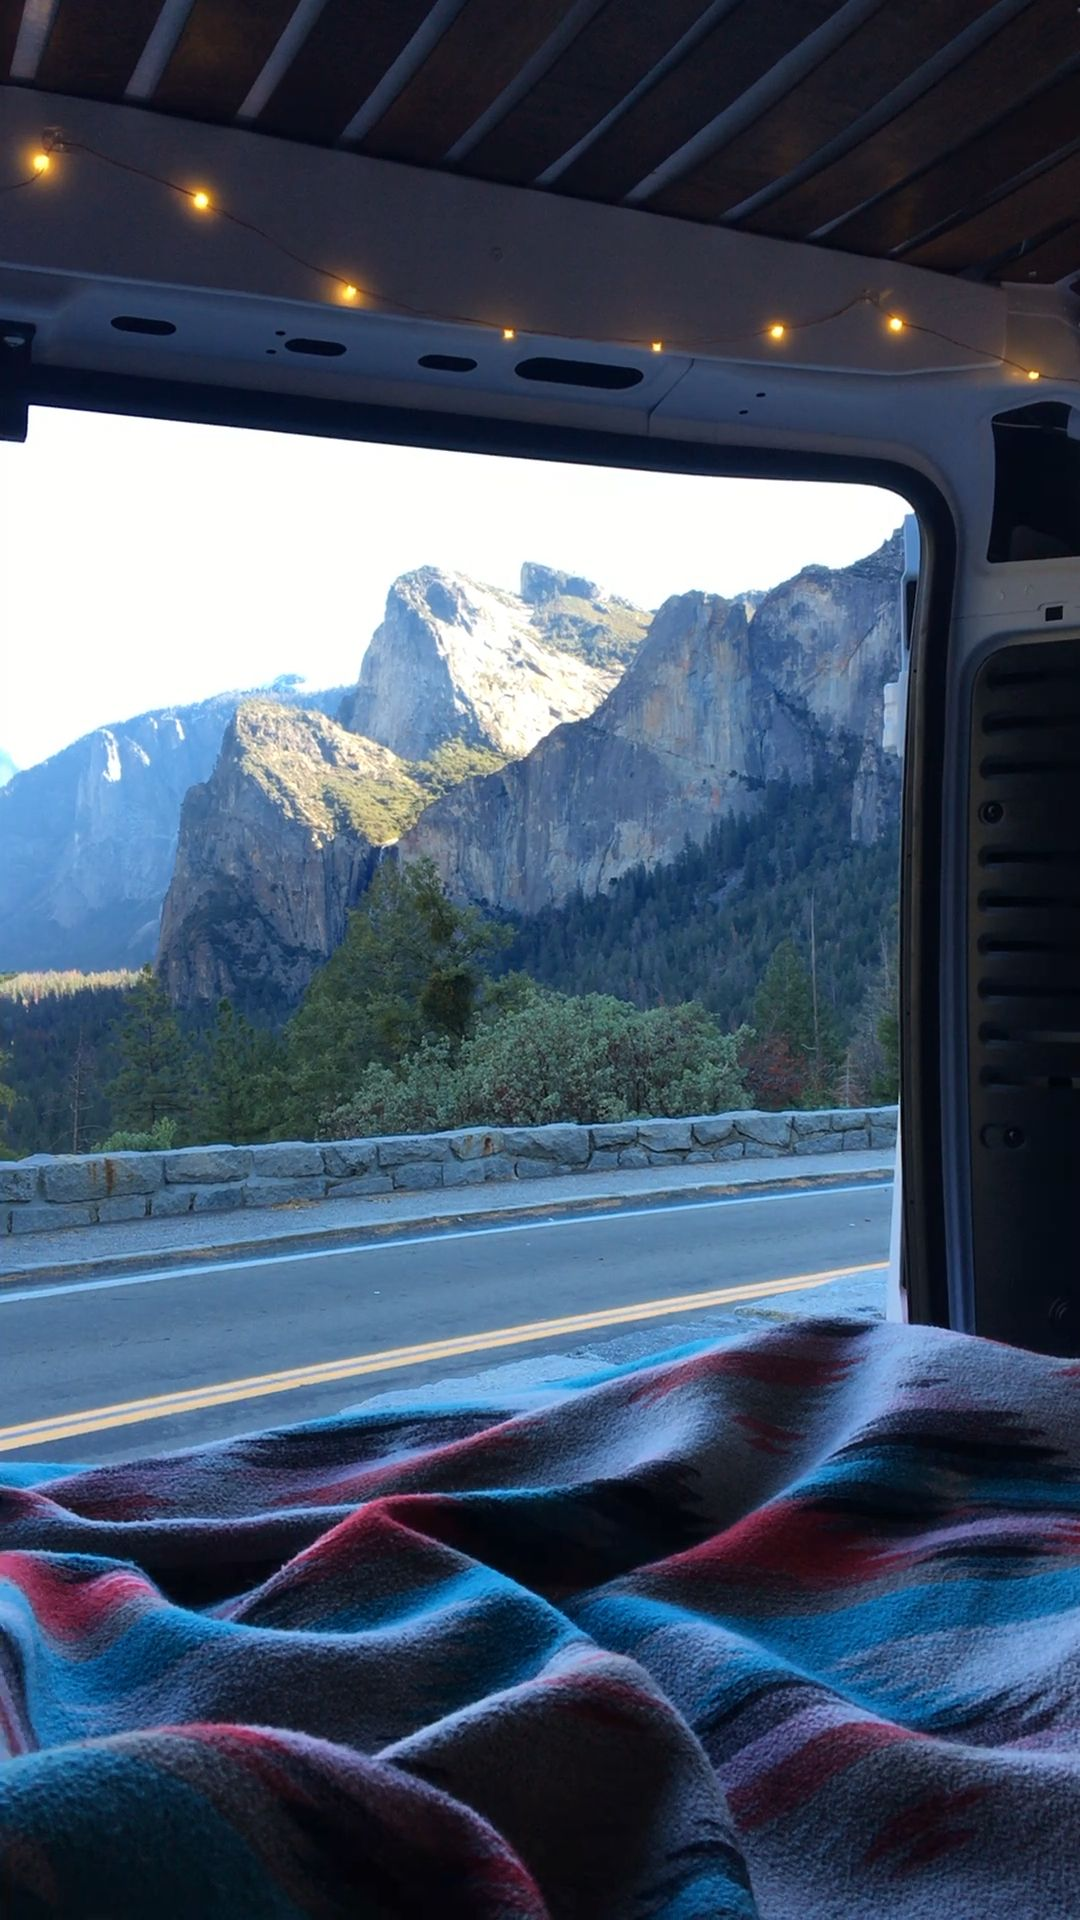 15 Things We Learned From Traveling In A Campervan